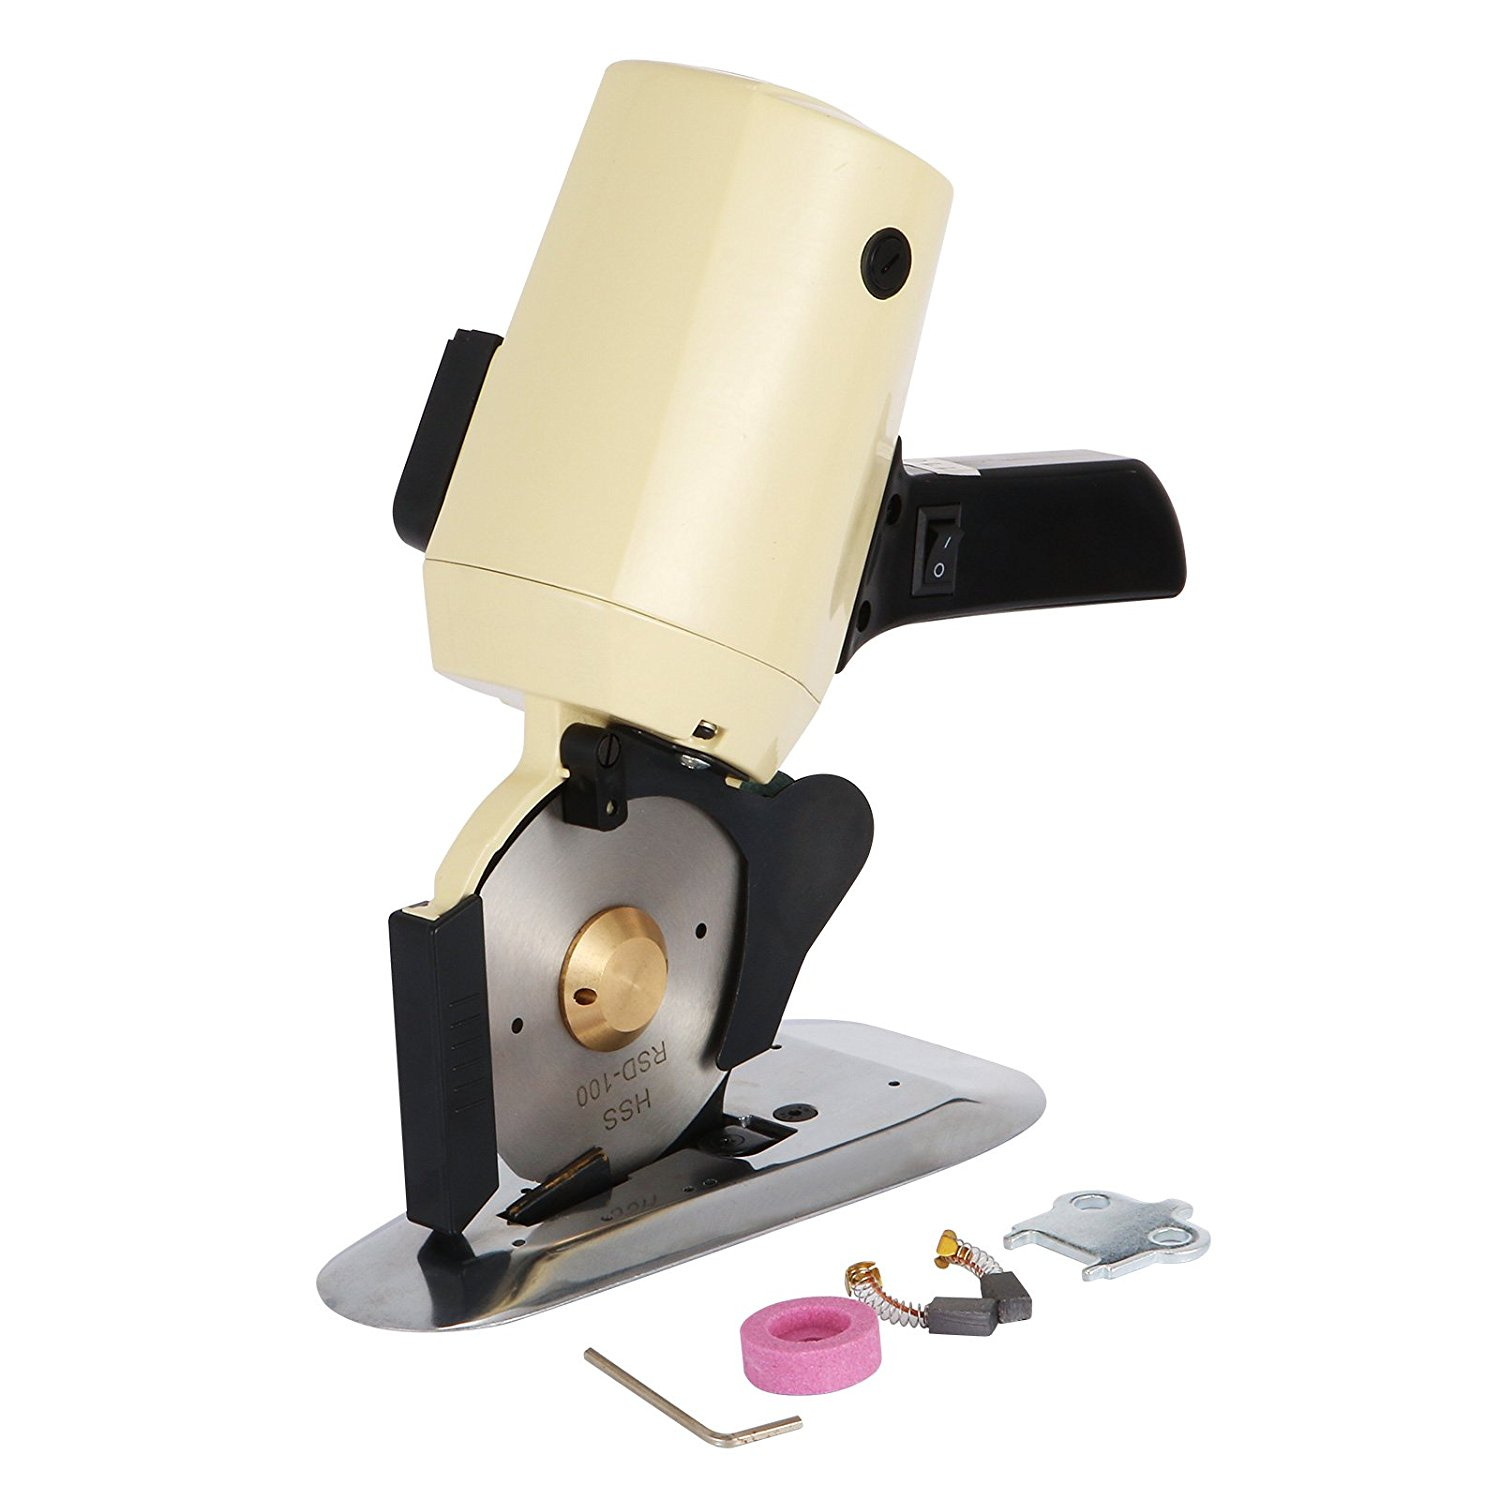 Best cloth cutting machine reviews: On budget? This can serve you best!